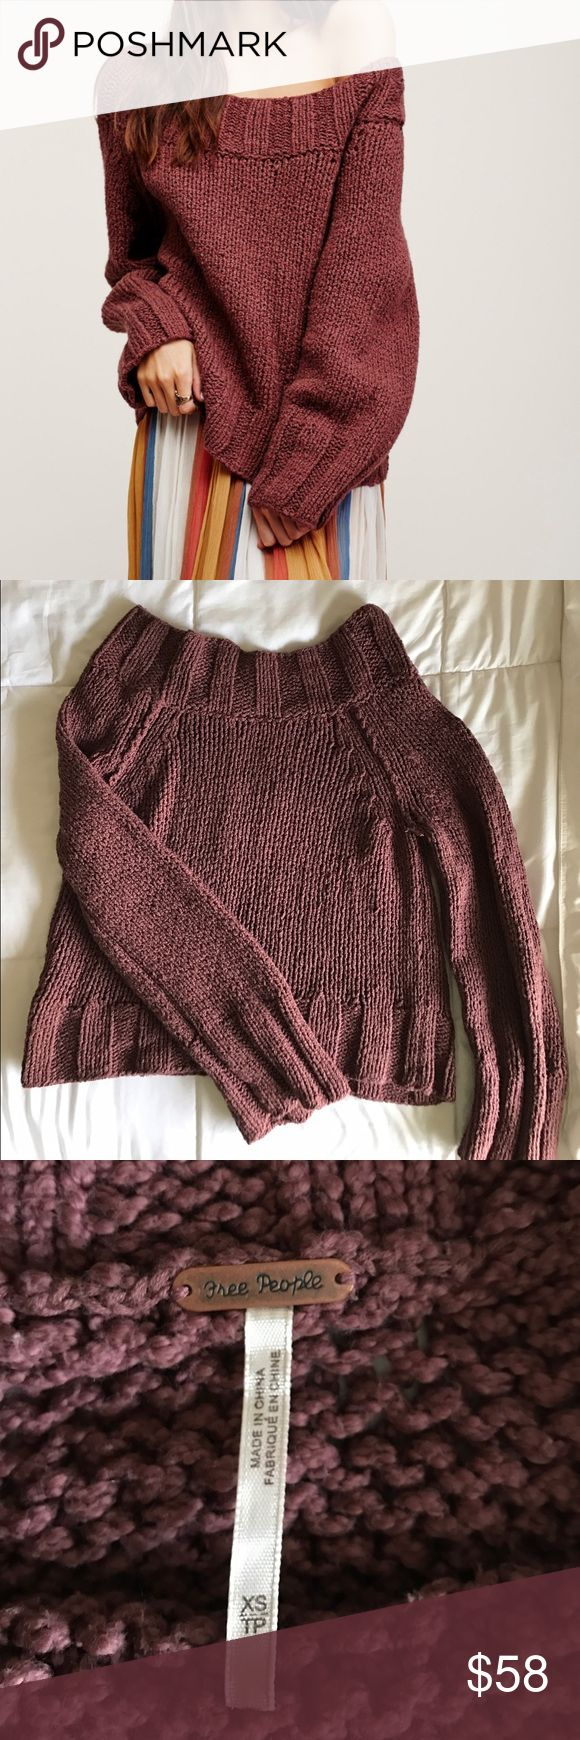 FP Beachy Slouch Pullover XS Super cute Free People mauvy brown knit pullover in XS. Runs loose and comfy; can fit XXS-S, maybe even some mediums. Can also be worn either as a wide scoop or off the shoulder- very versatile! Reposh; only worn once. No stains or flaws! Sold out in stores and hard to find Free People Sweaters